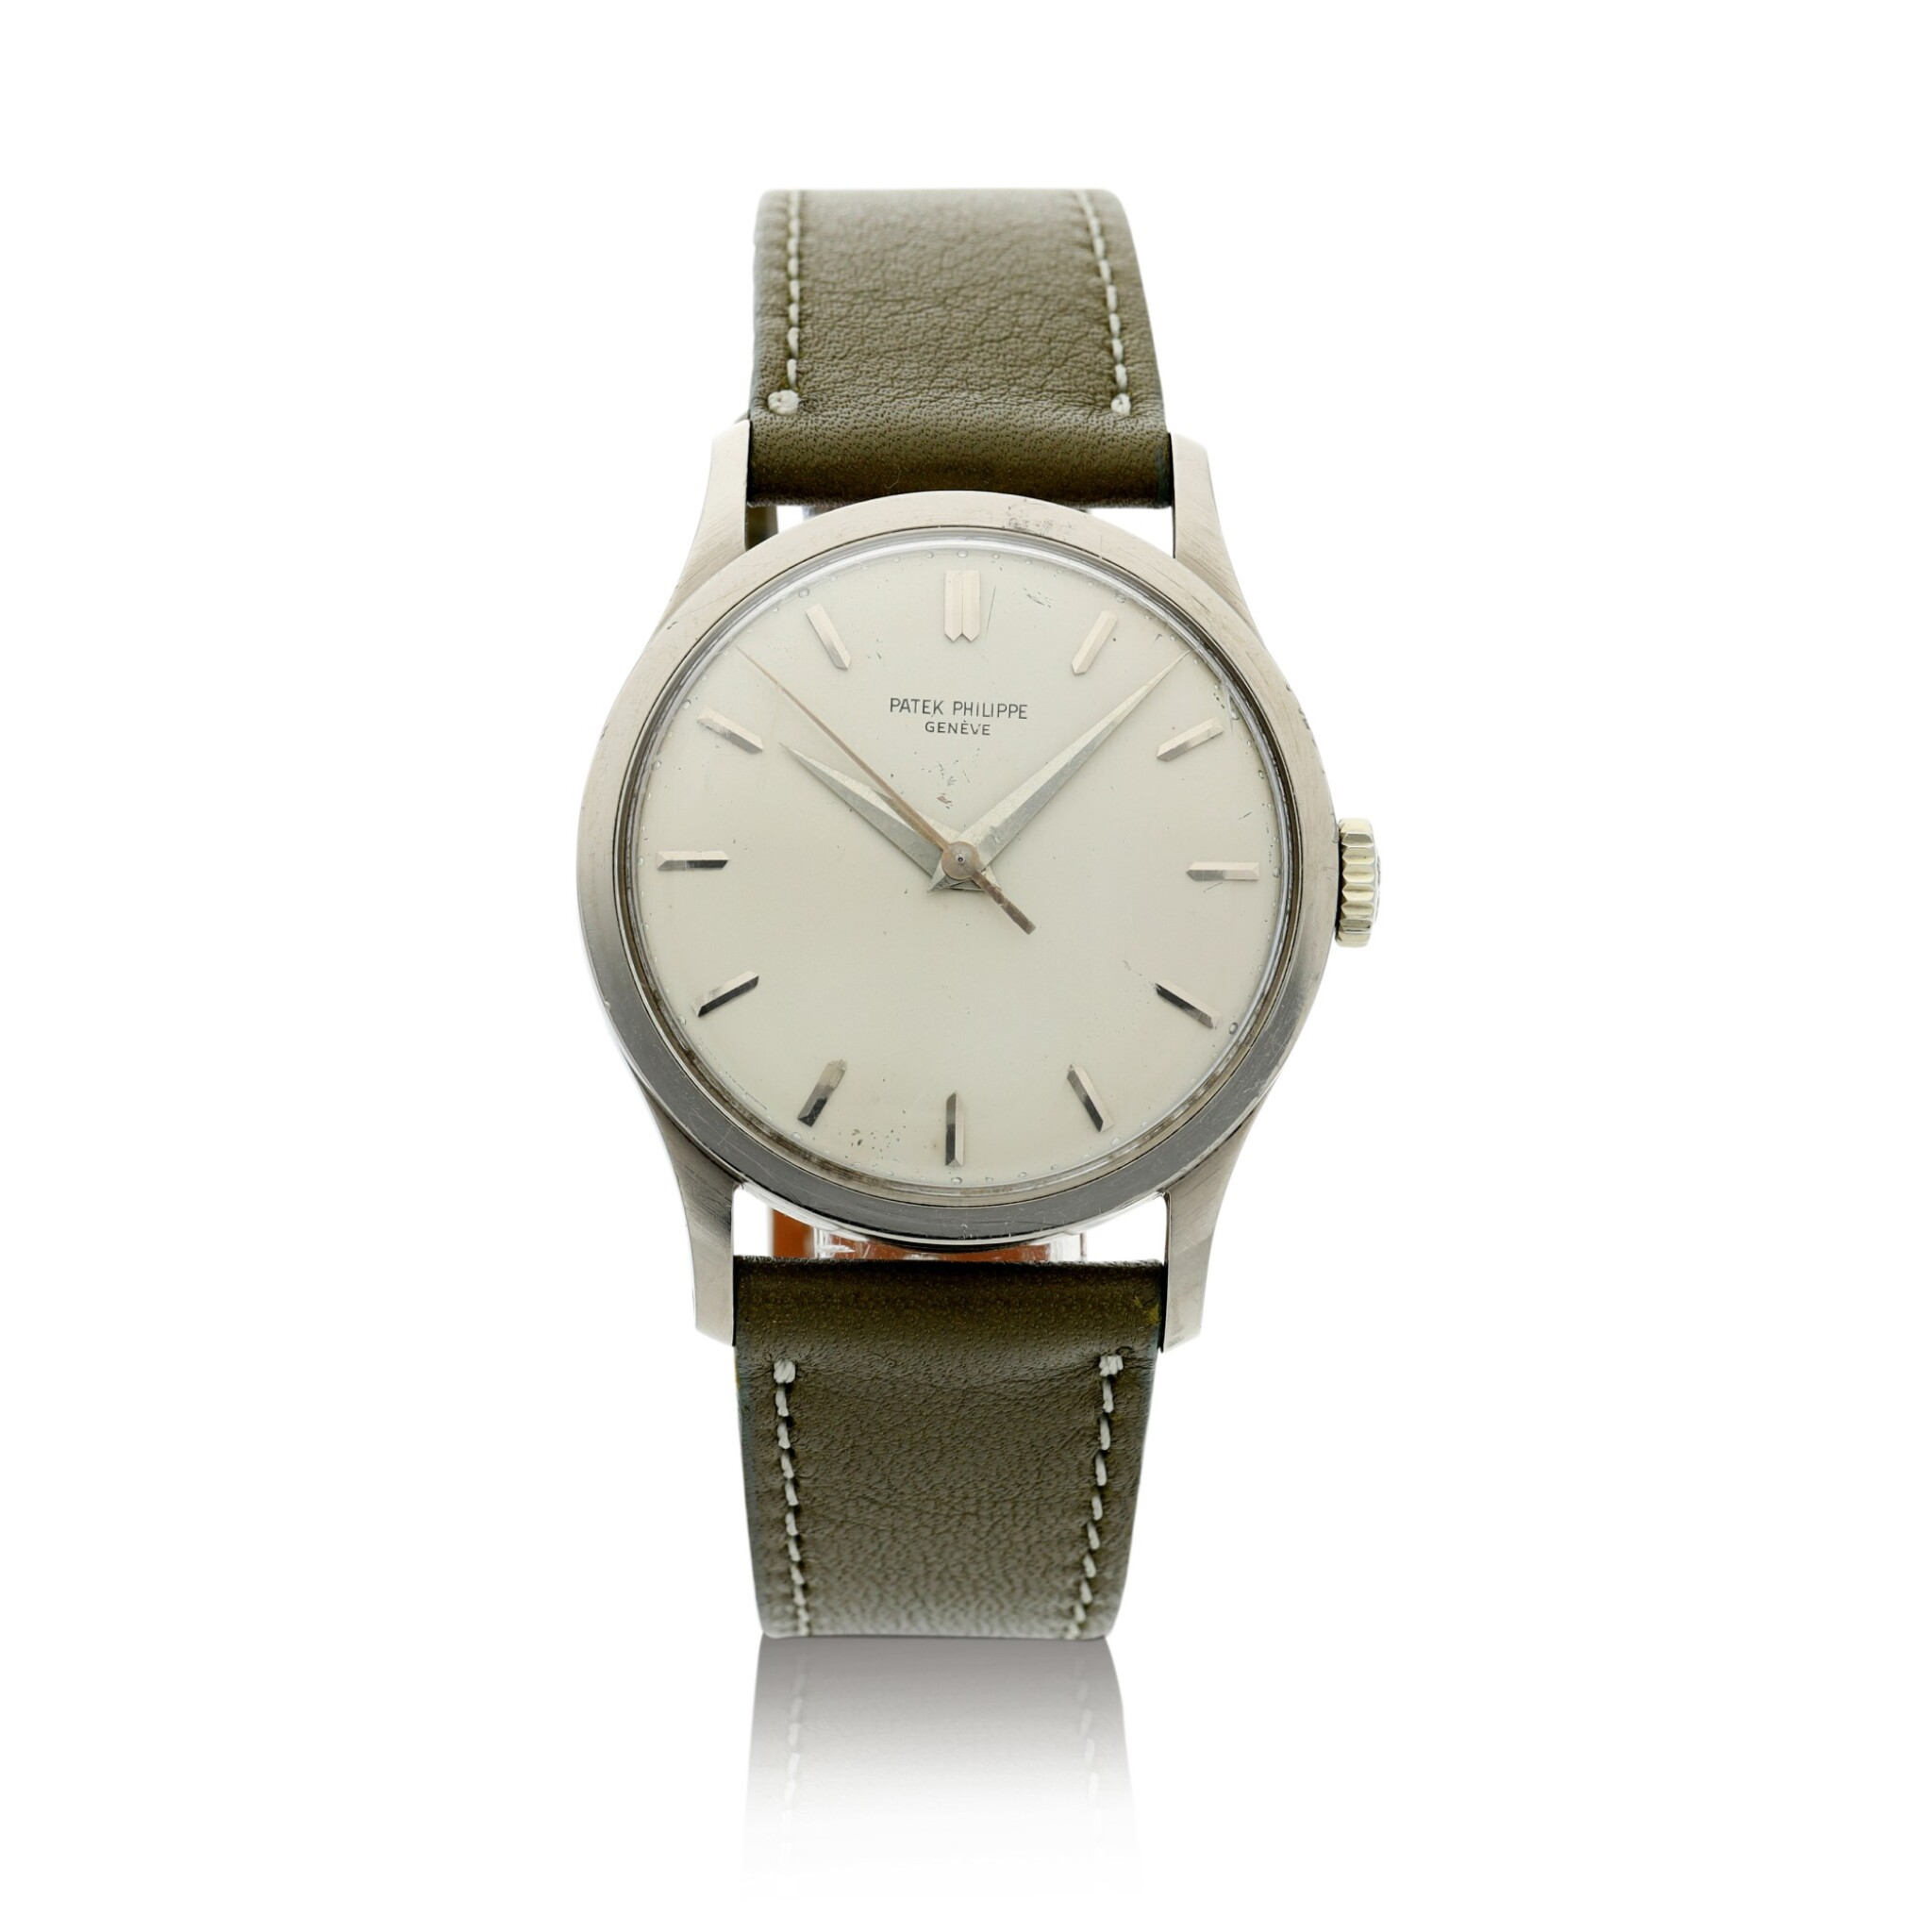 View full screen - View 1 of Lot 37. PATEK PHILIPPE | REFERENCE 570 CALATRAVA  A WHITE GOLD WRISTWATCH, MADE IN 1966.